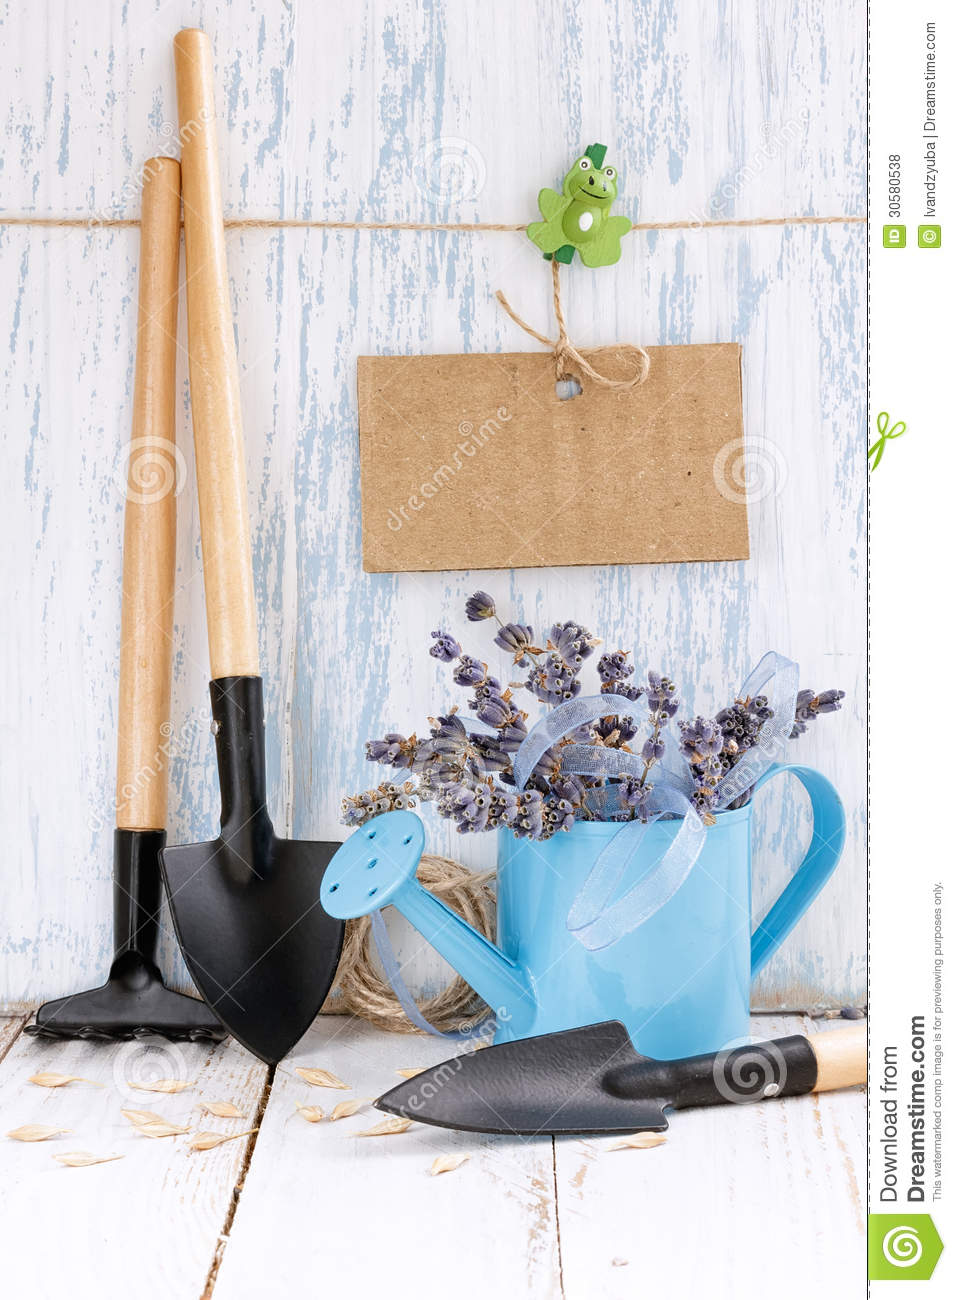 Gardening tools royalty free stock photos image 30580538 for Gardening tools watering